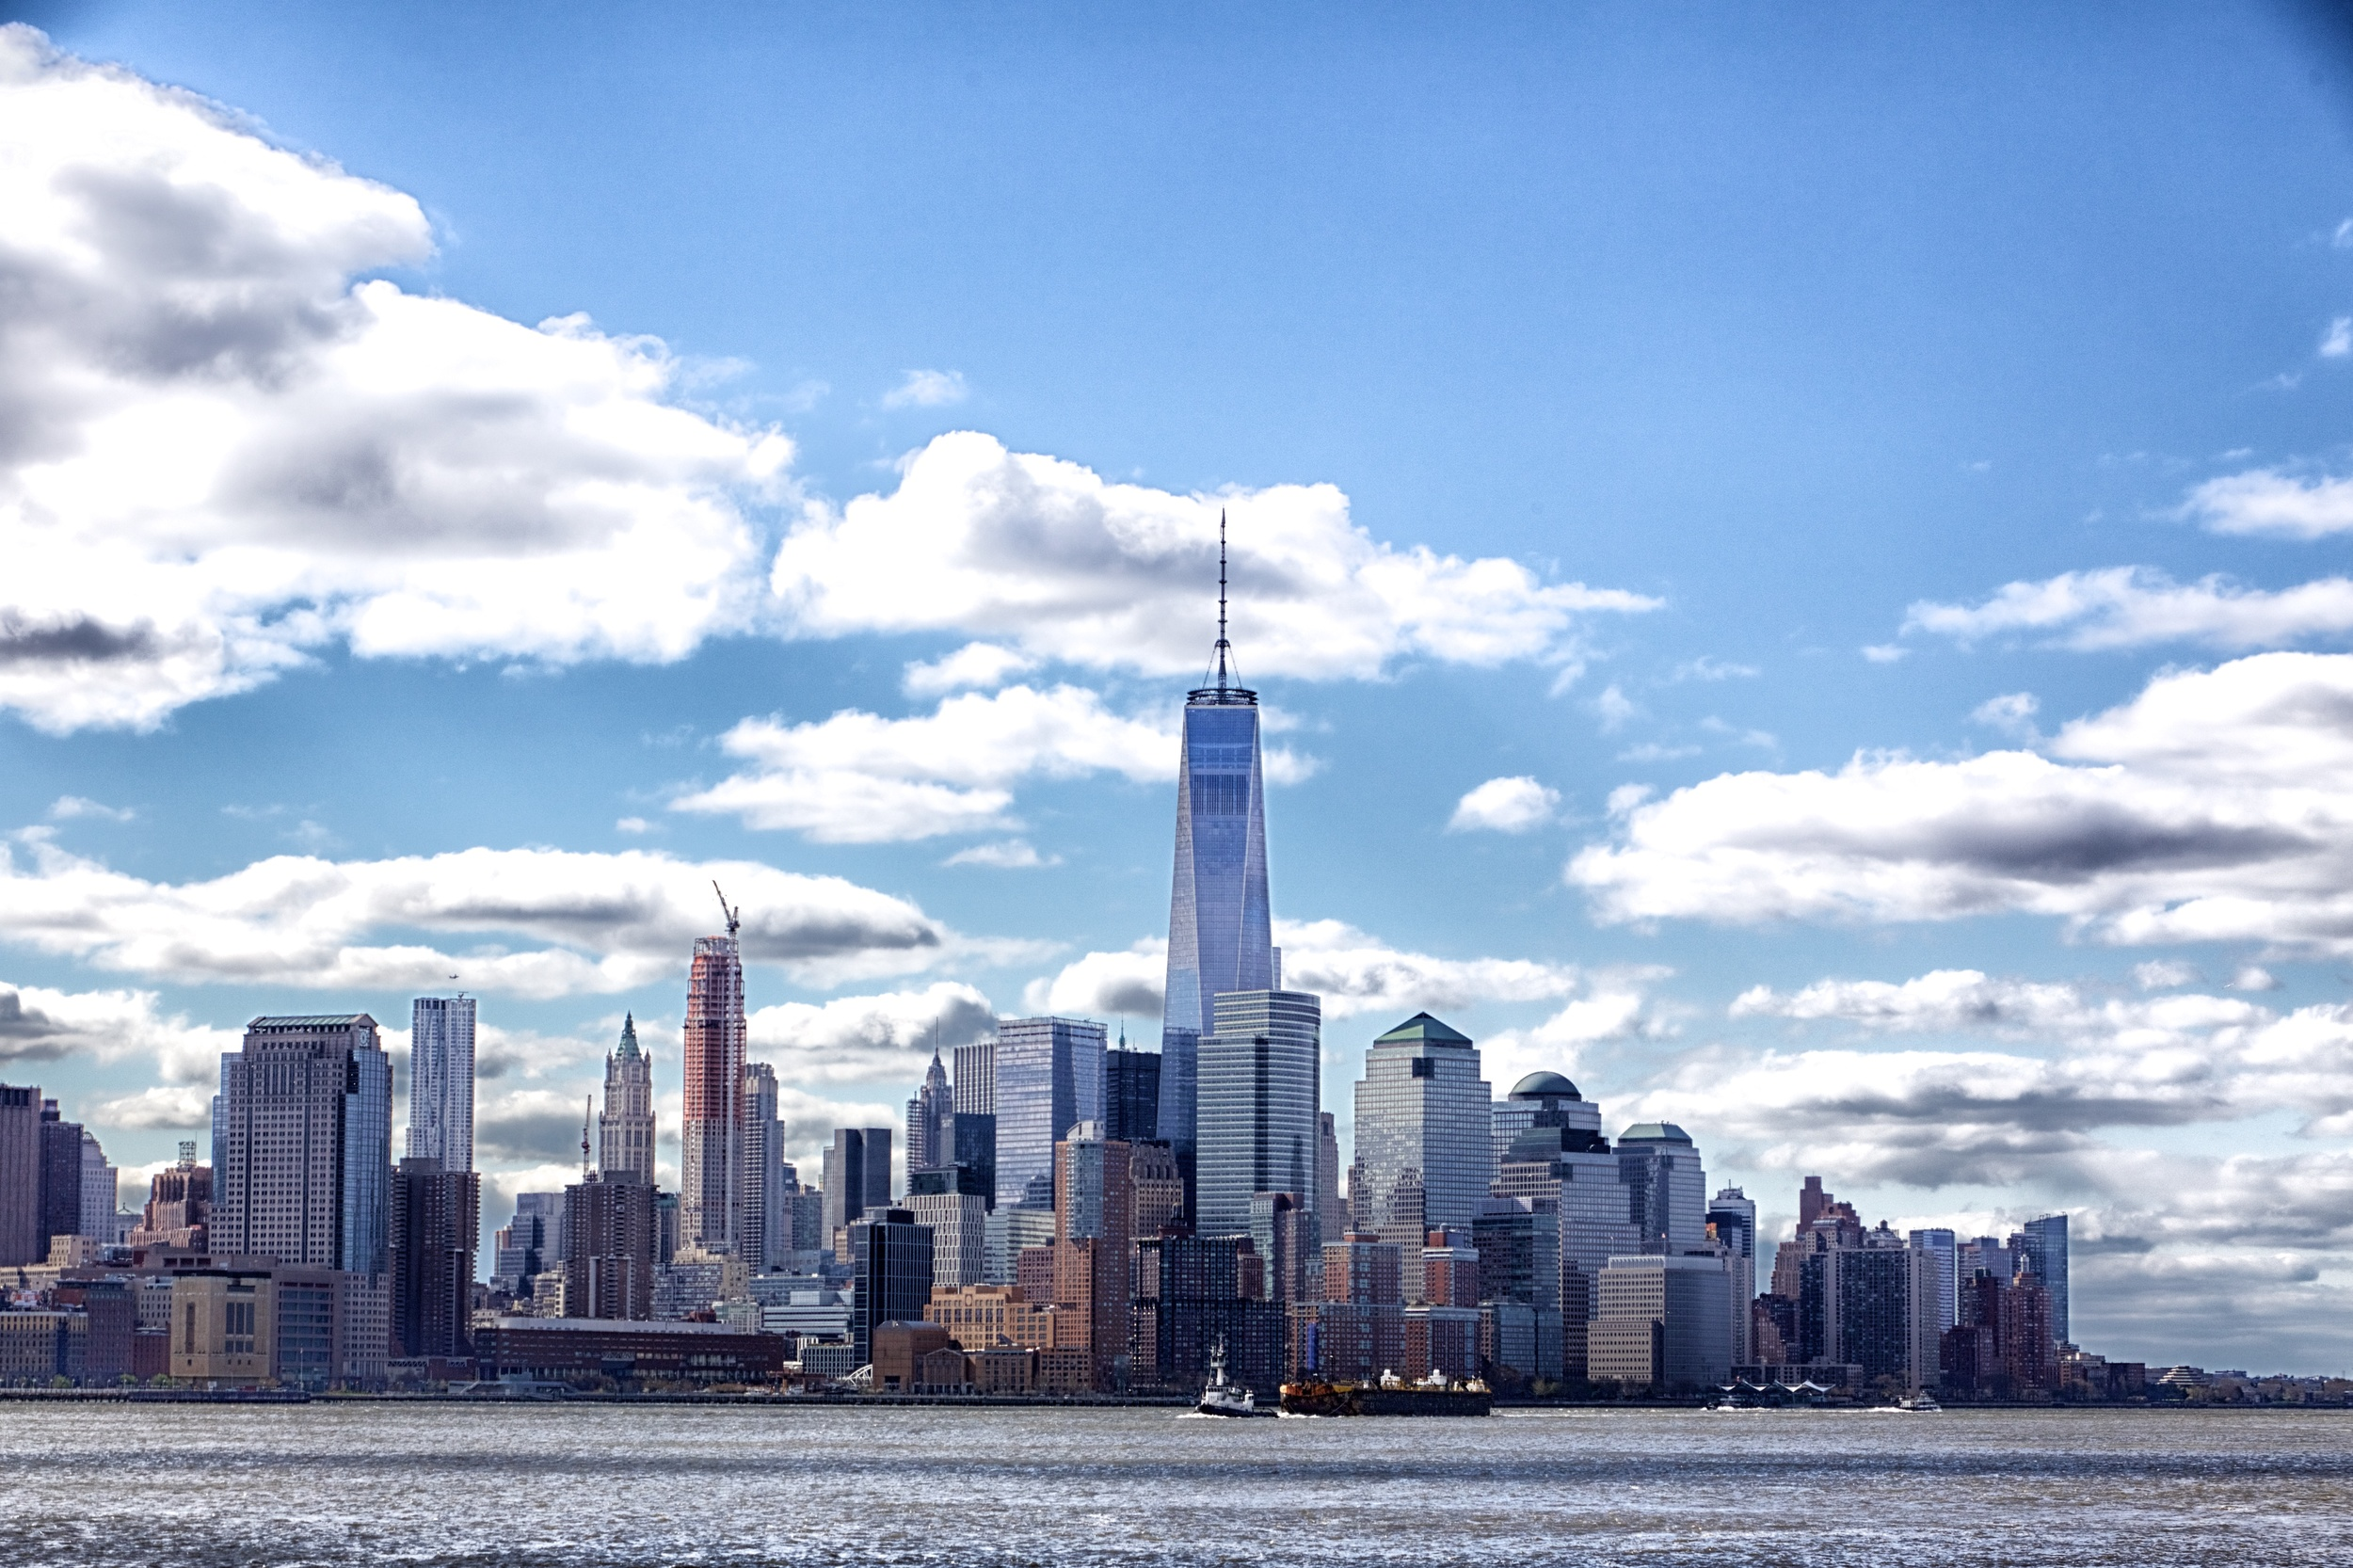 Lower Manhattan Skyline featuring One World Trade Center -